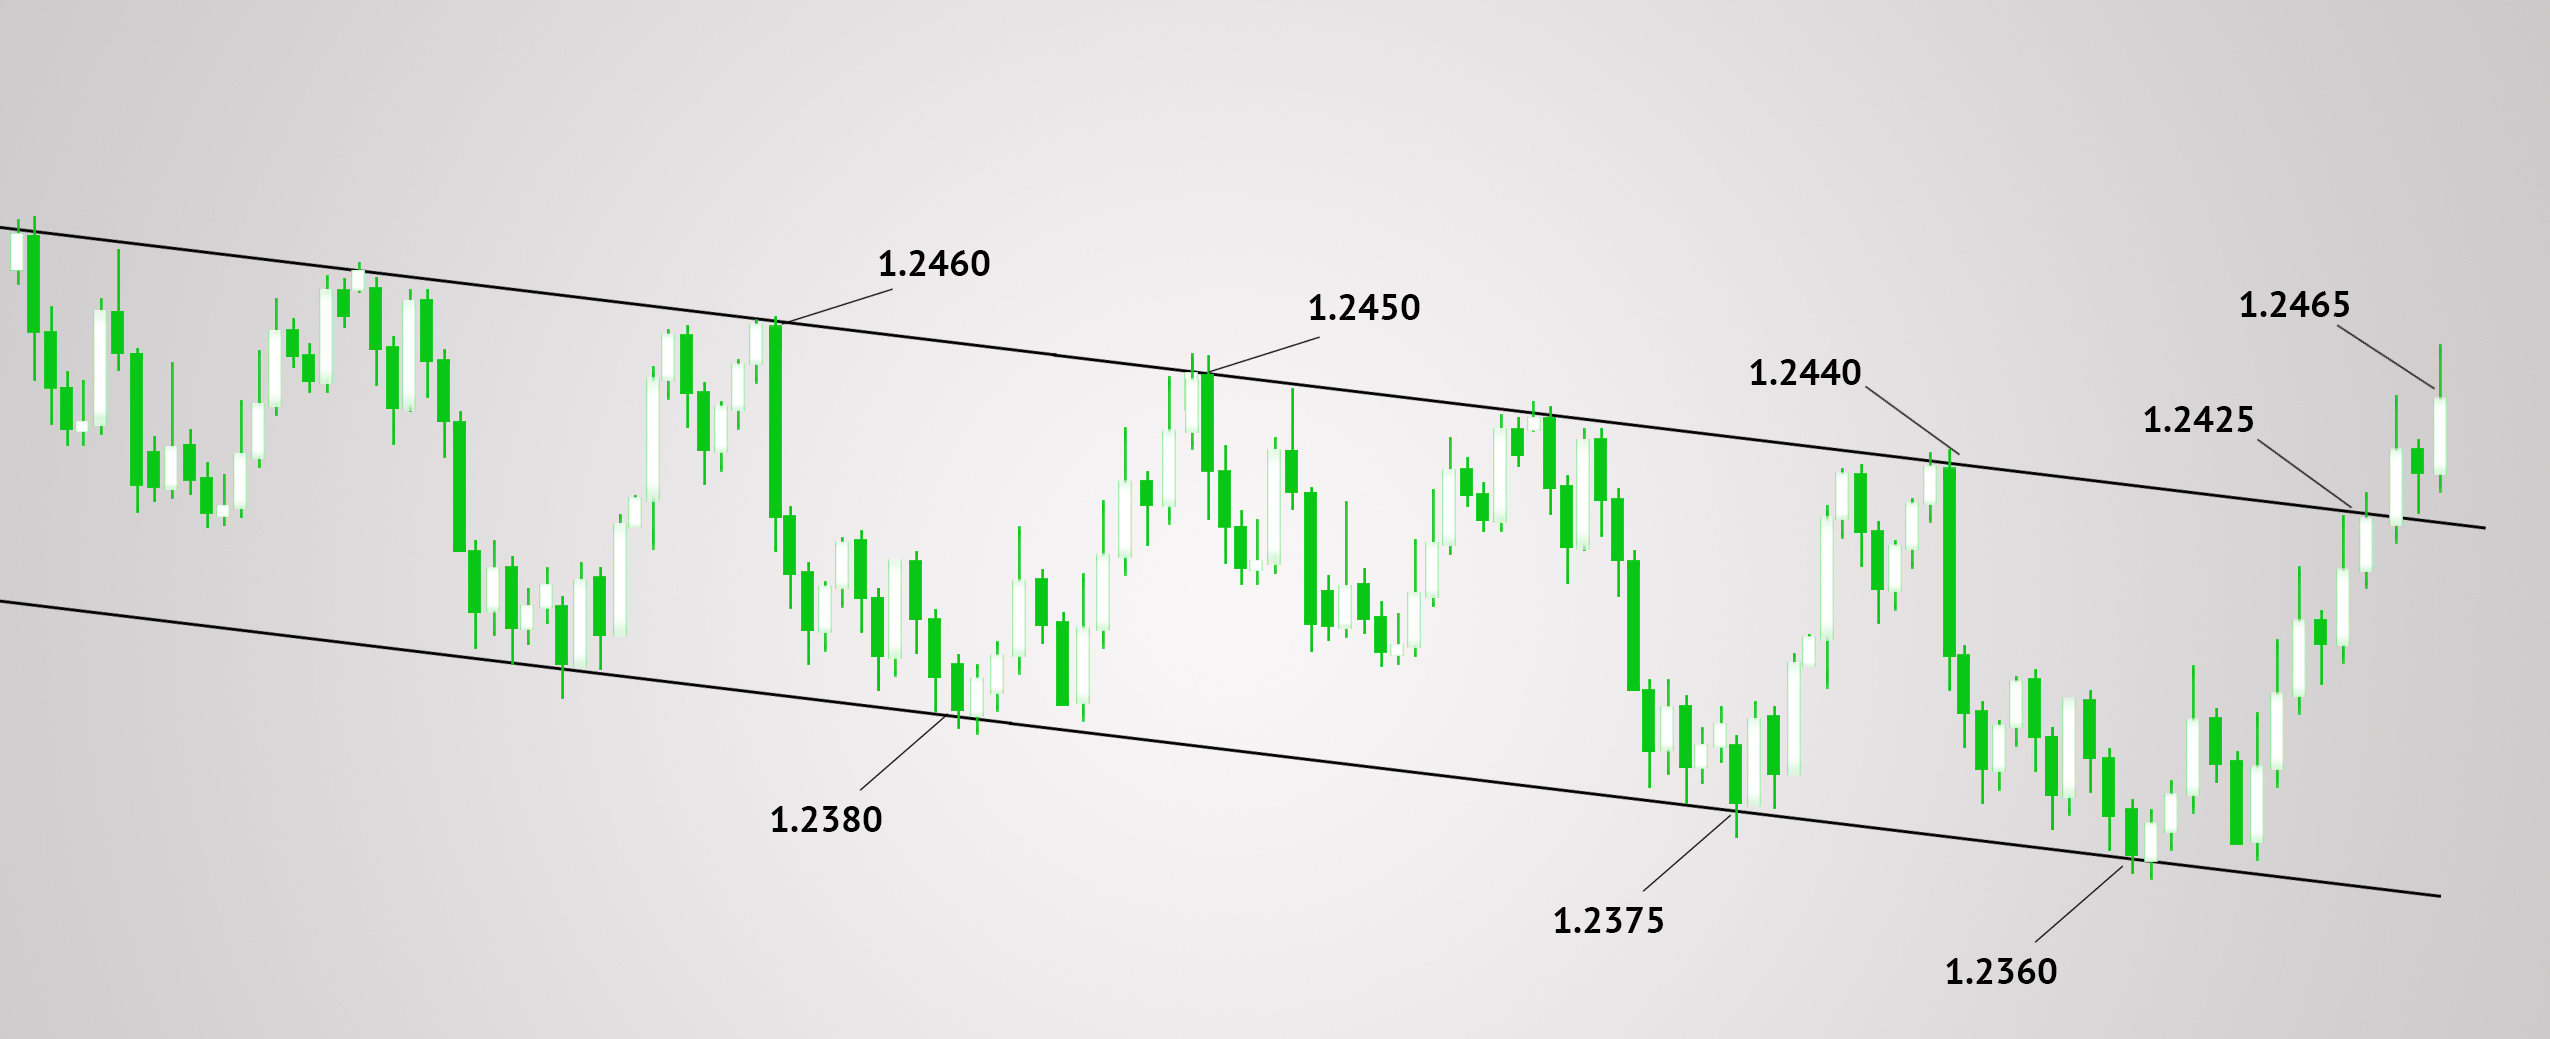 Trades within the price channel - Teletrade